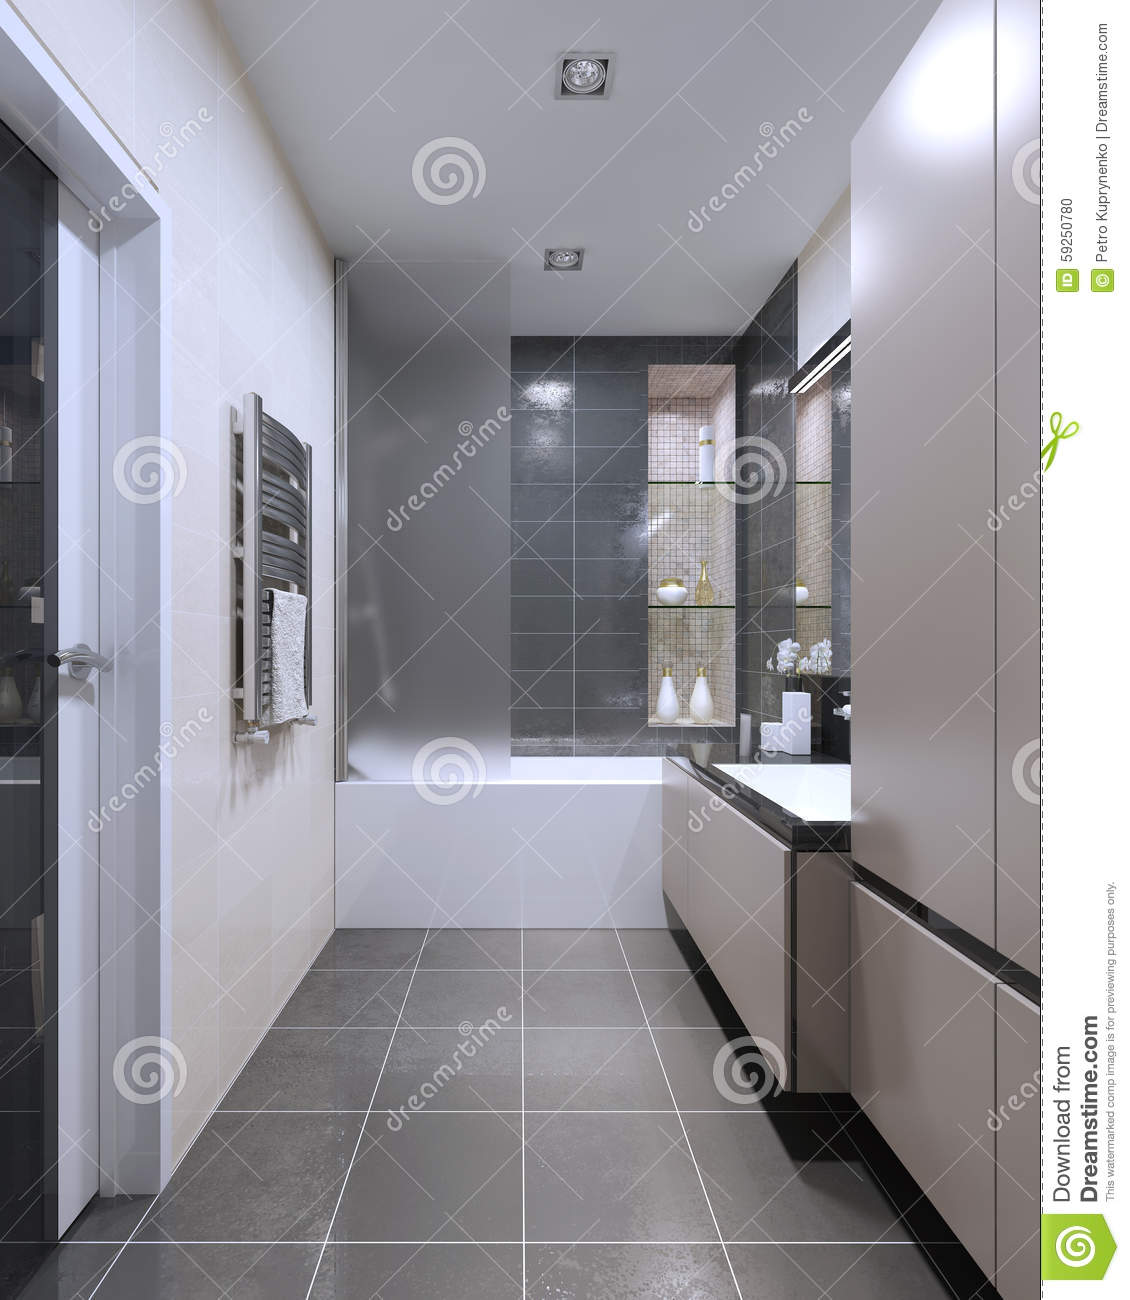 Expensive High Tech Bathroom Trend Stock Illustration Illustration Of Expensive Gray 59250780